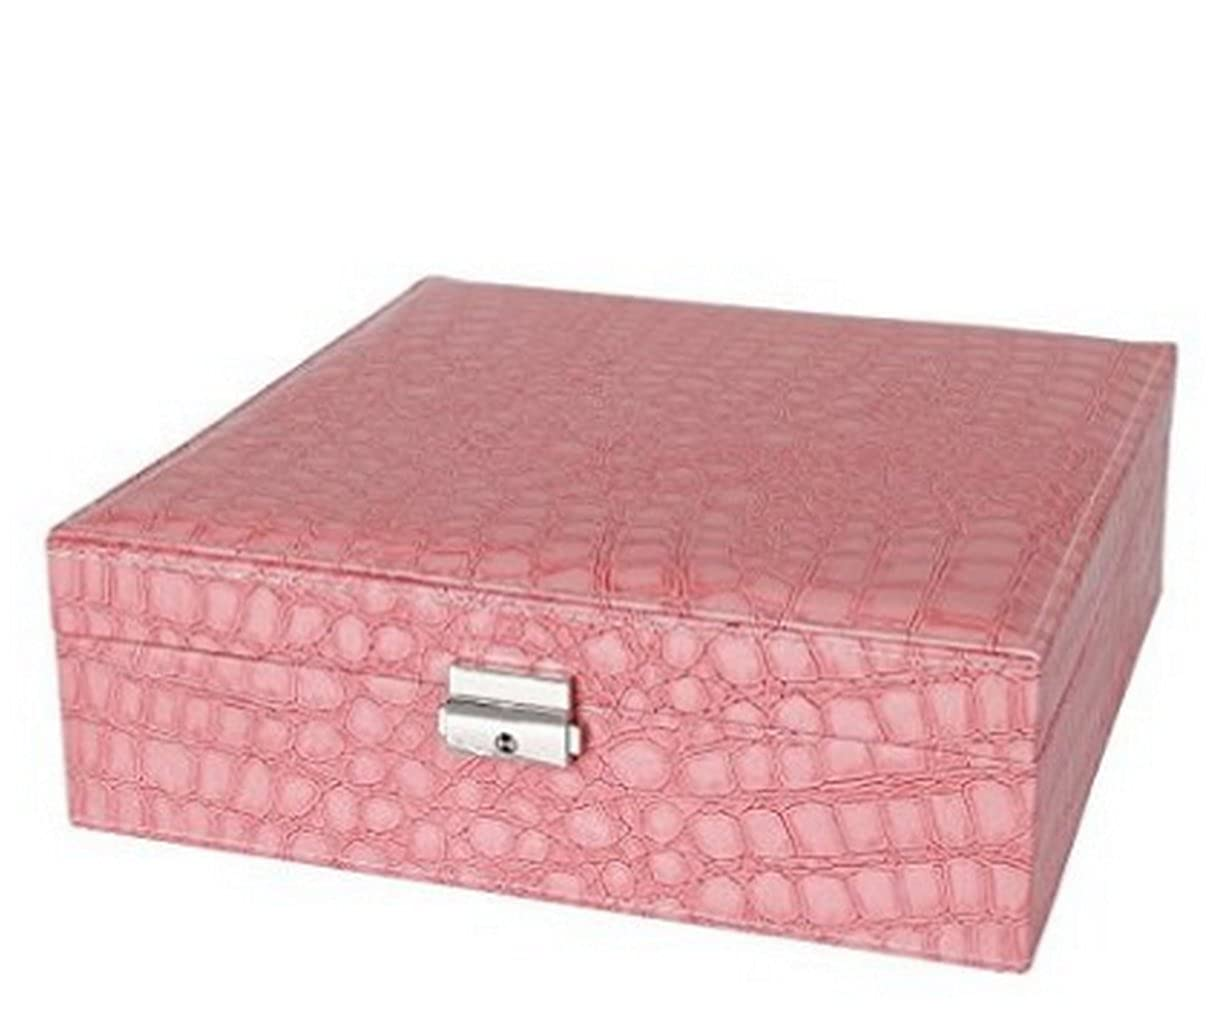 Leather Jewelry Box Makeup Case Large Capacity Cosmetic Lockable Storage Organizer Display with Mirror Rose (Pink)